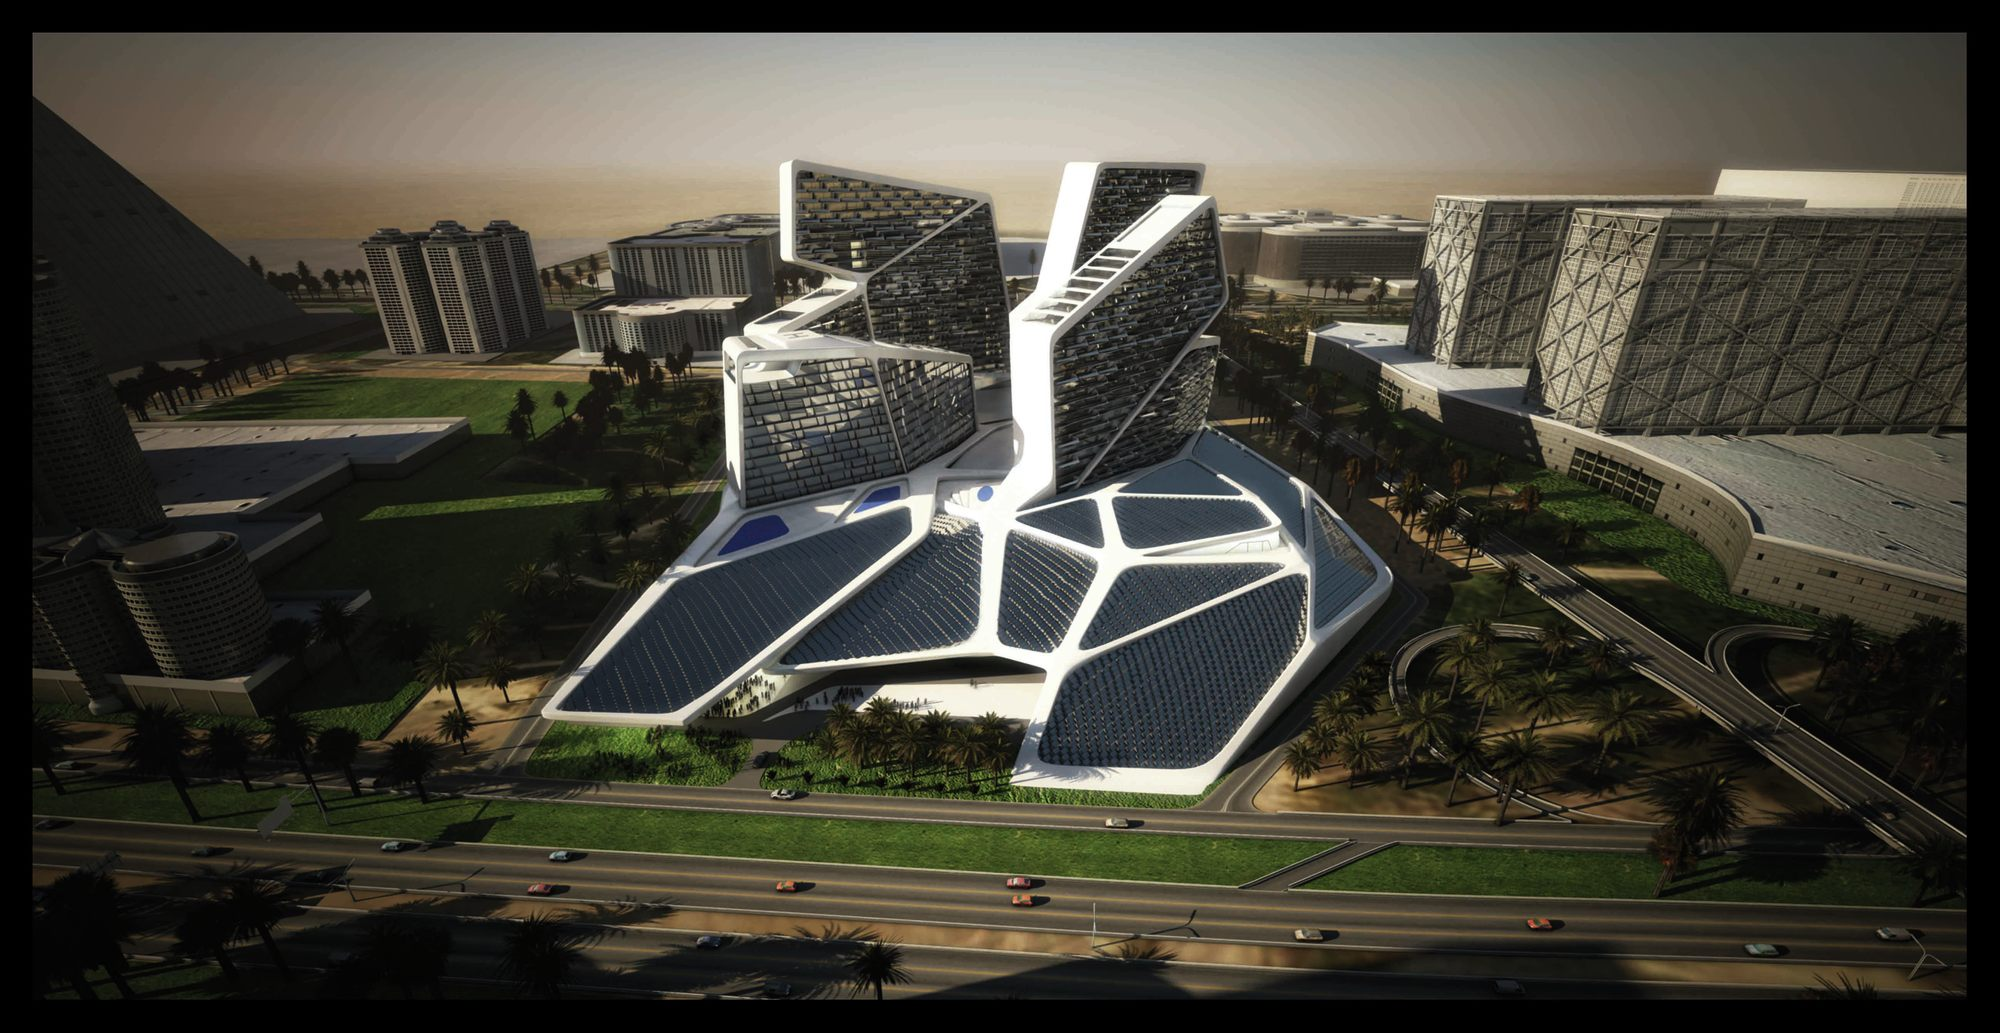 Gallery of vertical village graft architects 14 Solar architect